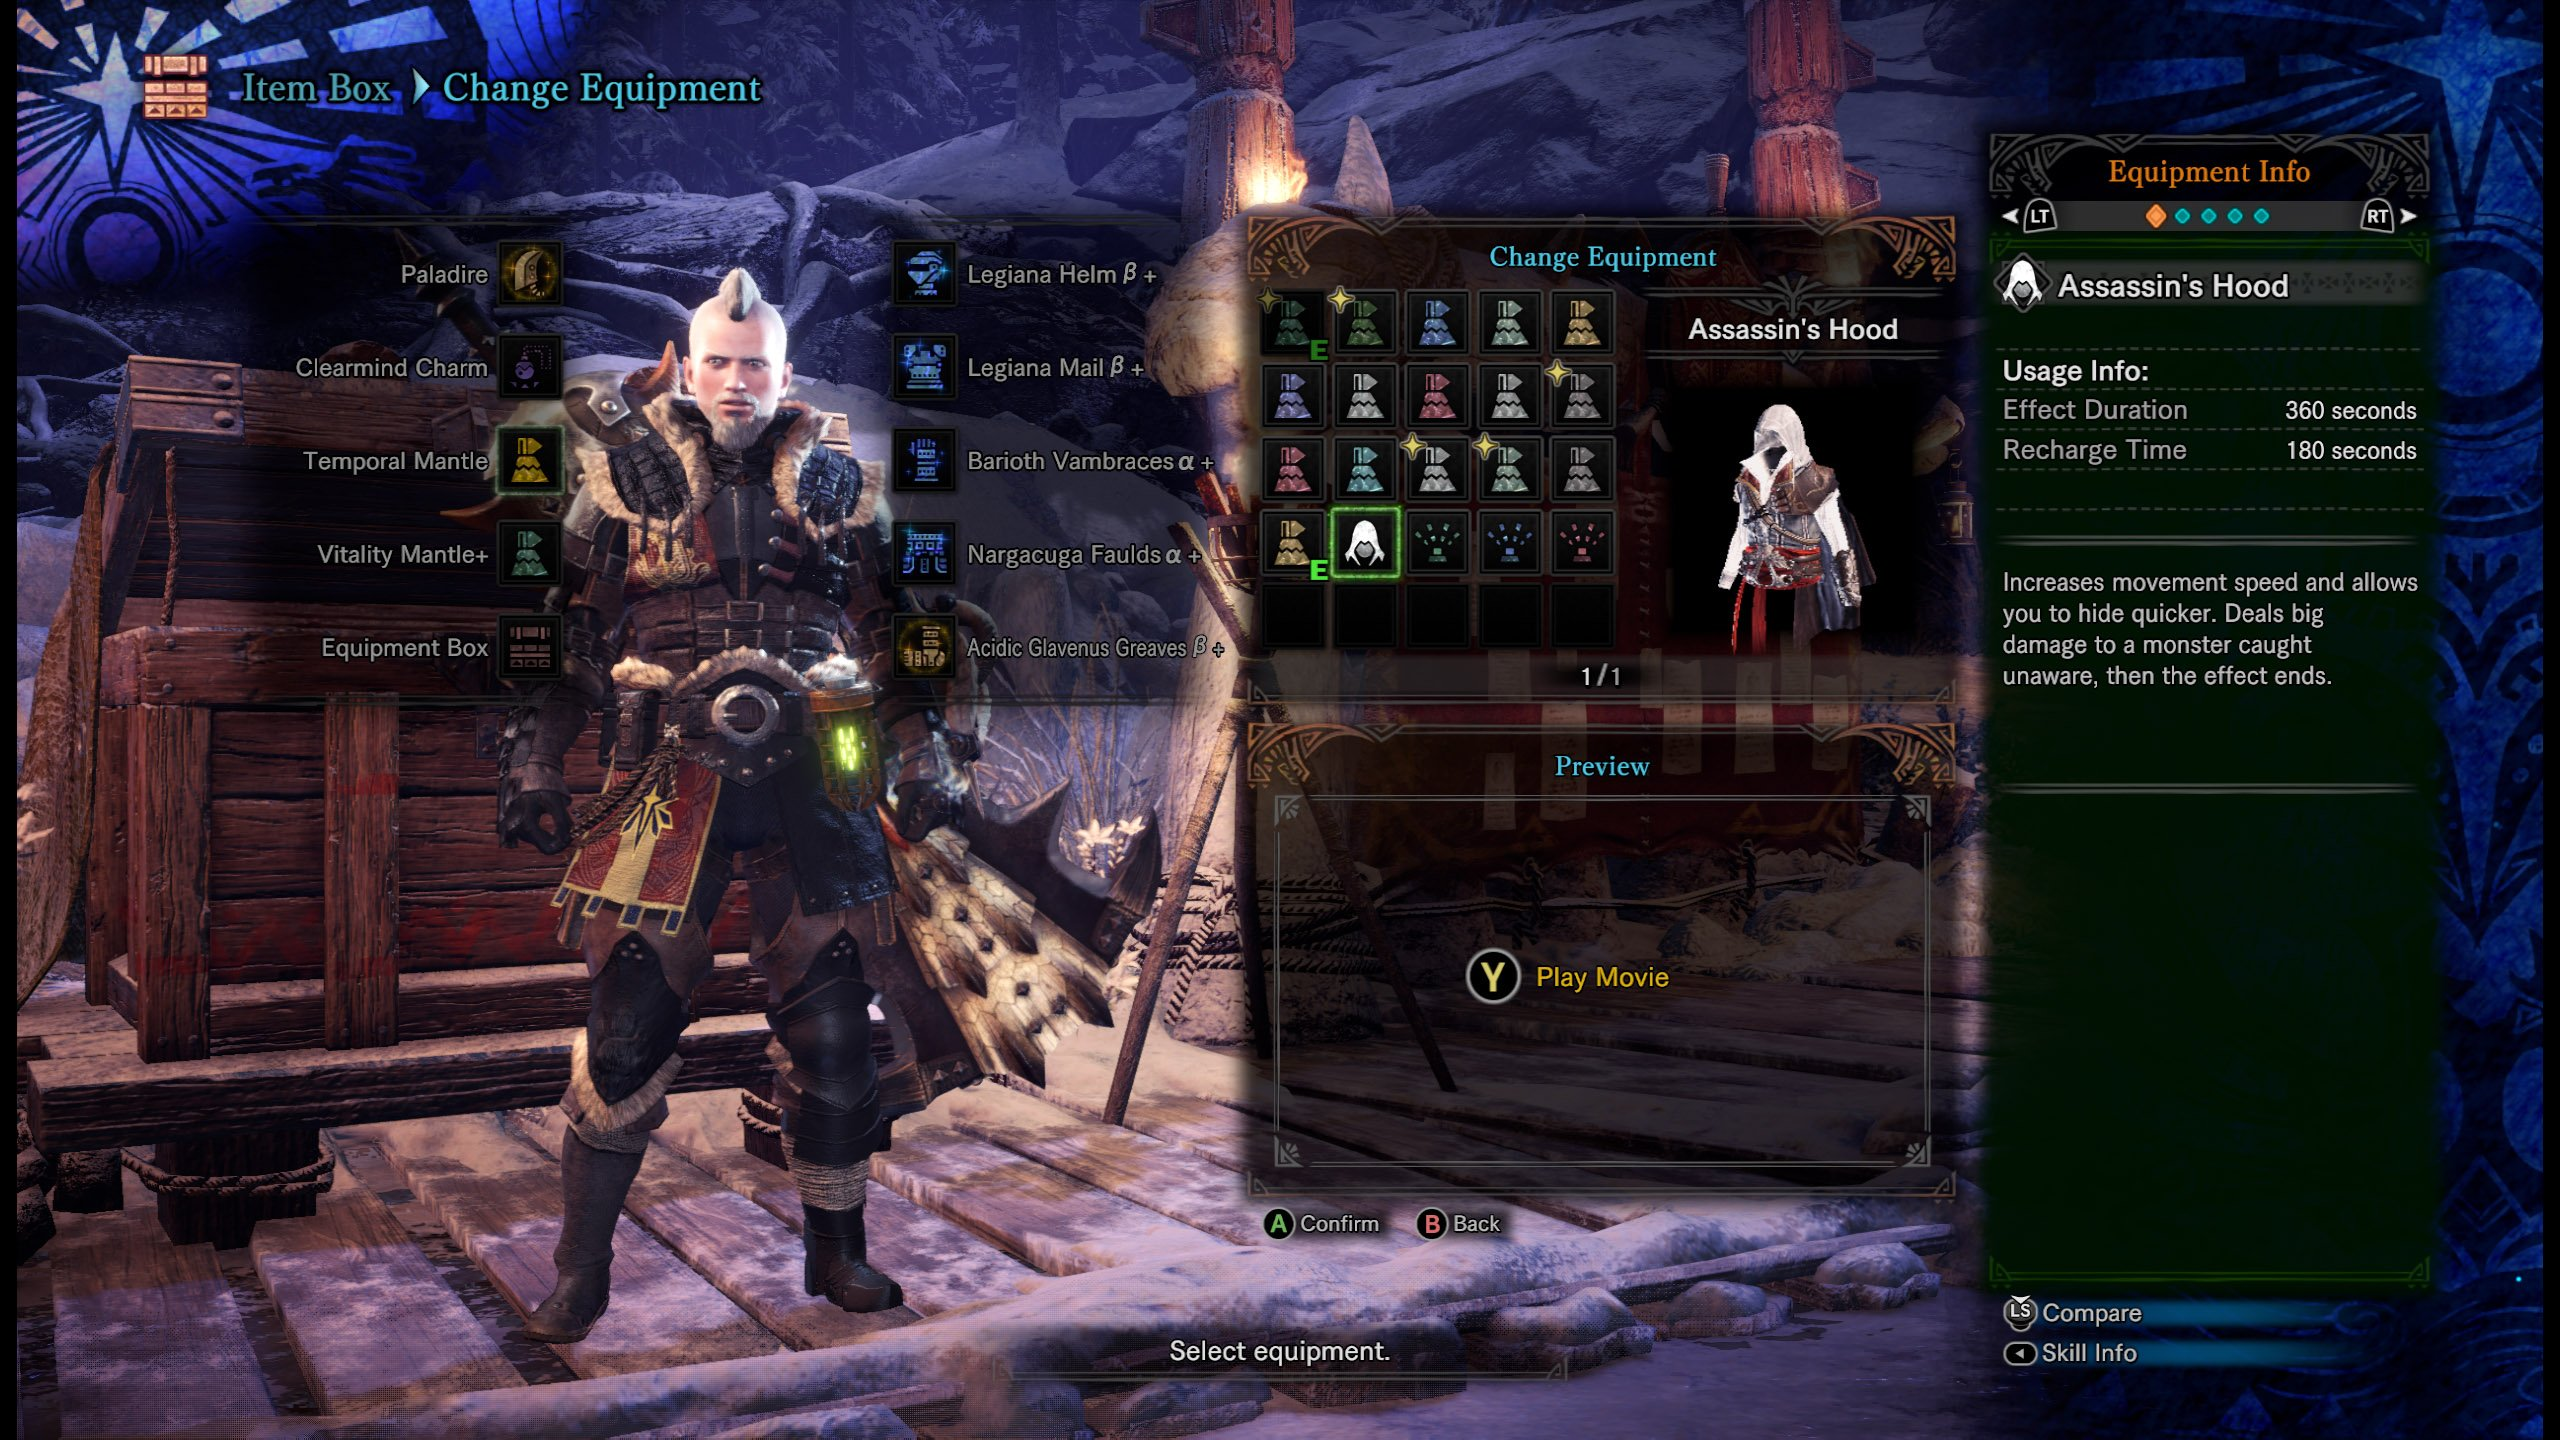 Assassin's Hood Mantle Monster Hunter World